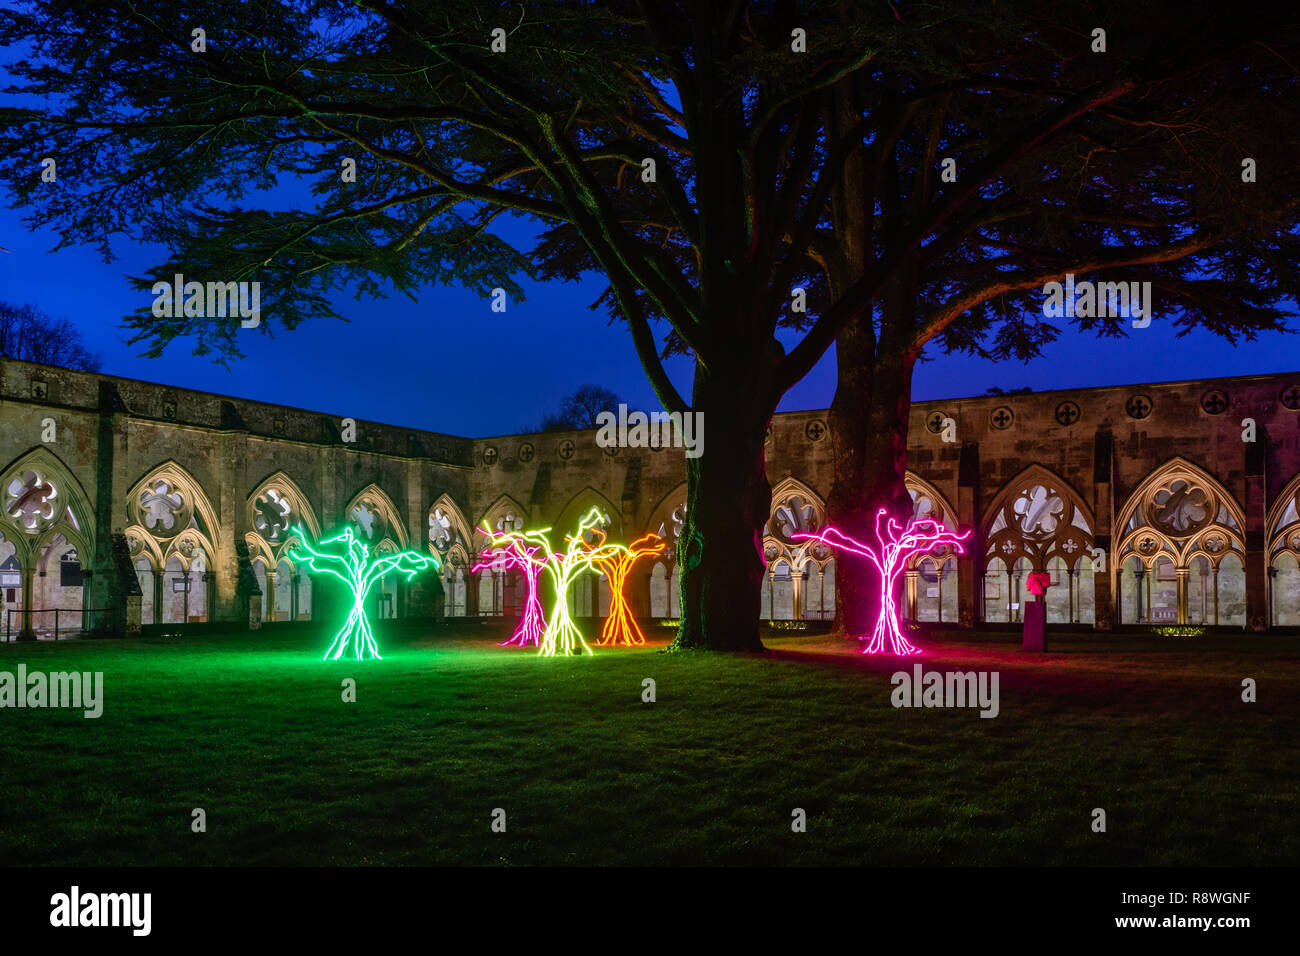 'Lumen' by David Ogle in the Cloister Garth of the Salisbury Cathedral as part of the 'From Darkness to Light art Illuminations',England, UK - Stock Image